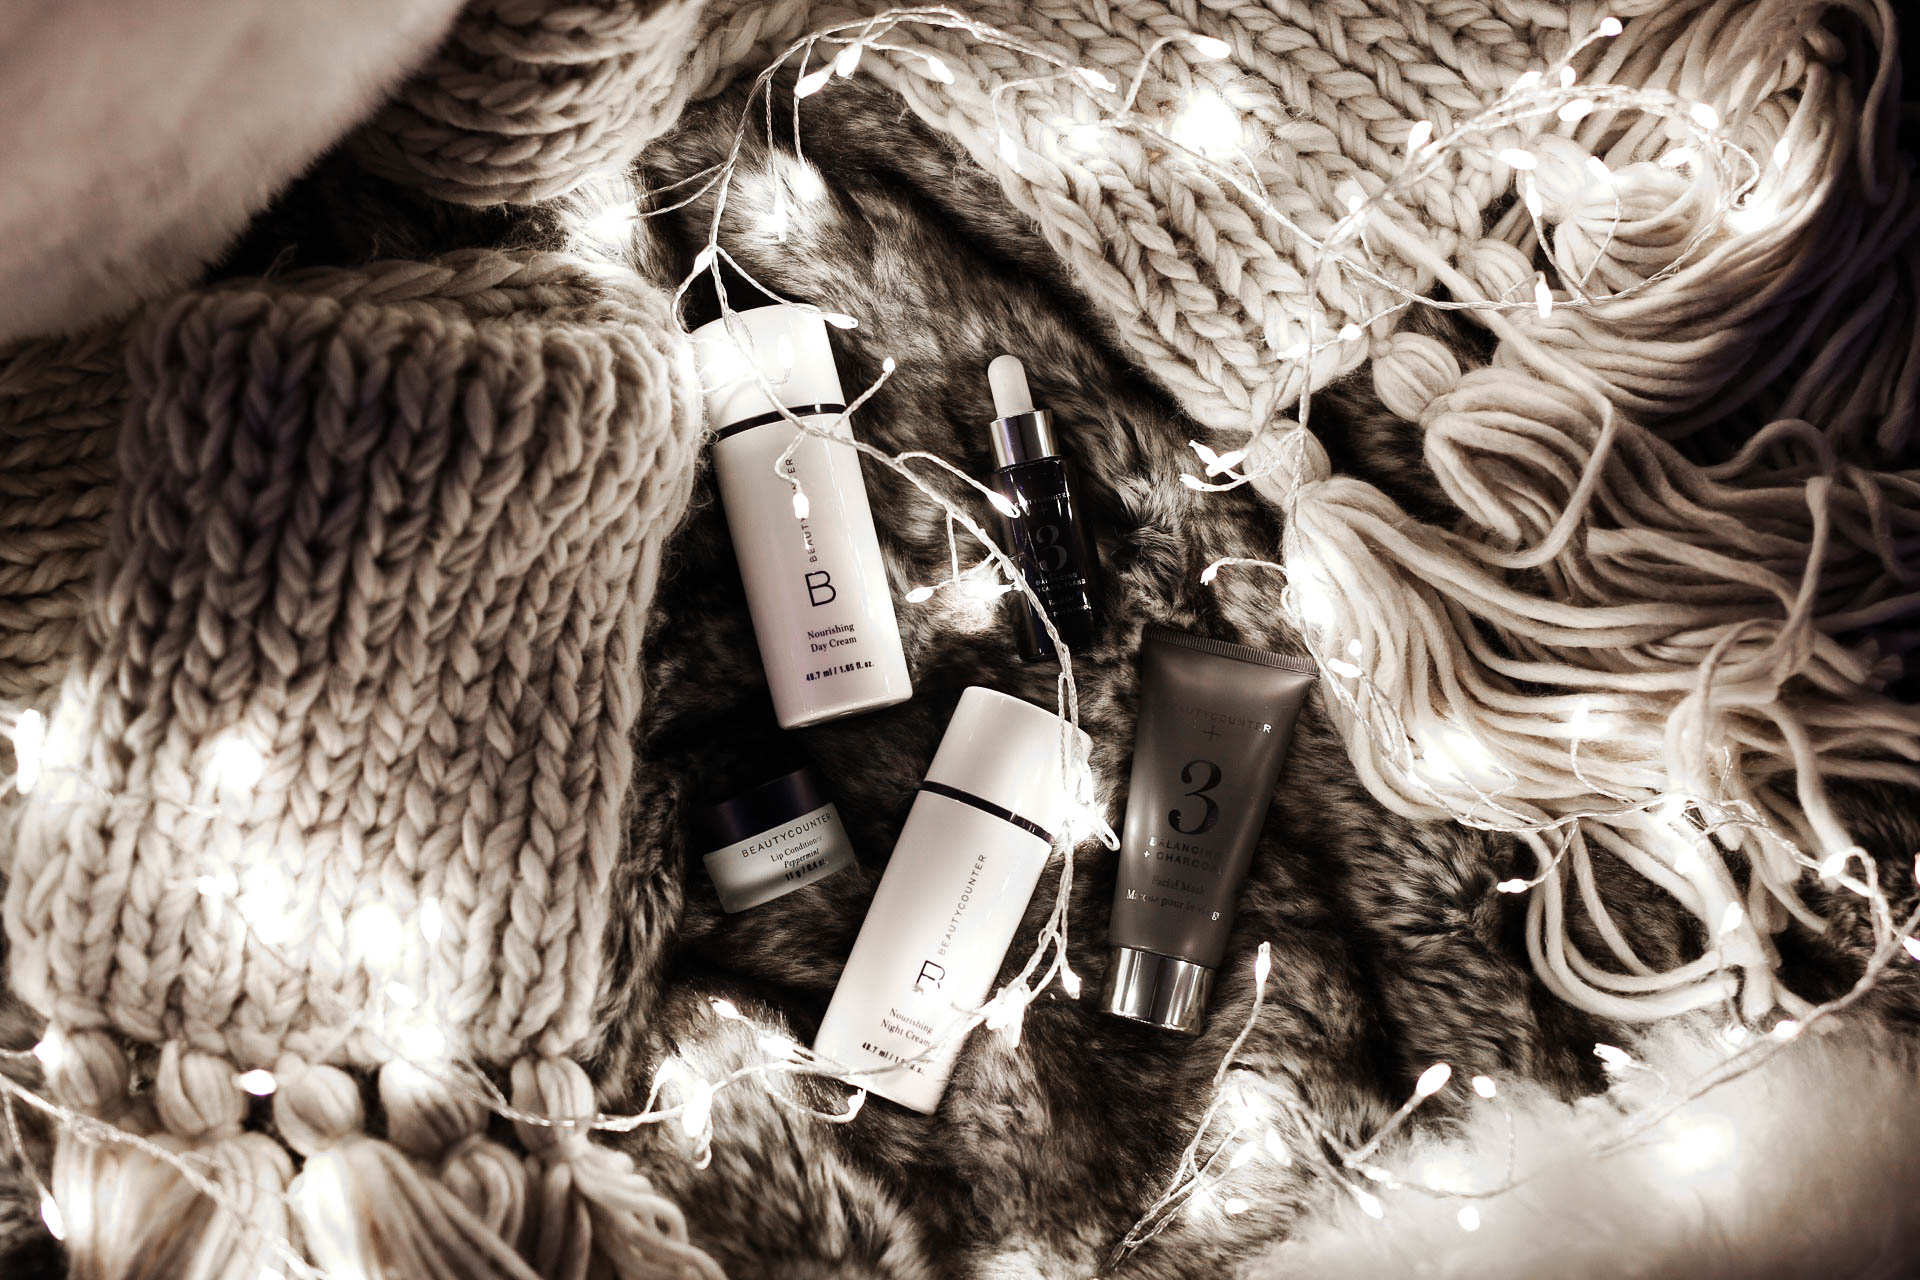 DTKAustin shares why you need to switch to safer, healthier skincare and beauty products along with what she recommends to use. - Safer Skincare Products for the New Year by popular Austin style blogger Dressed to Kill